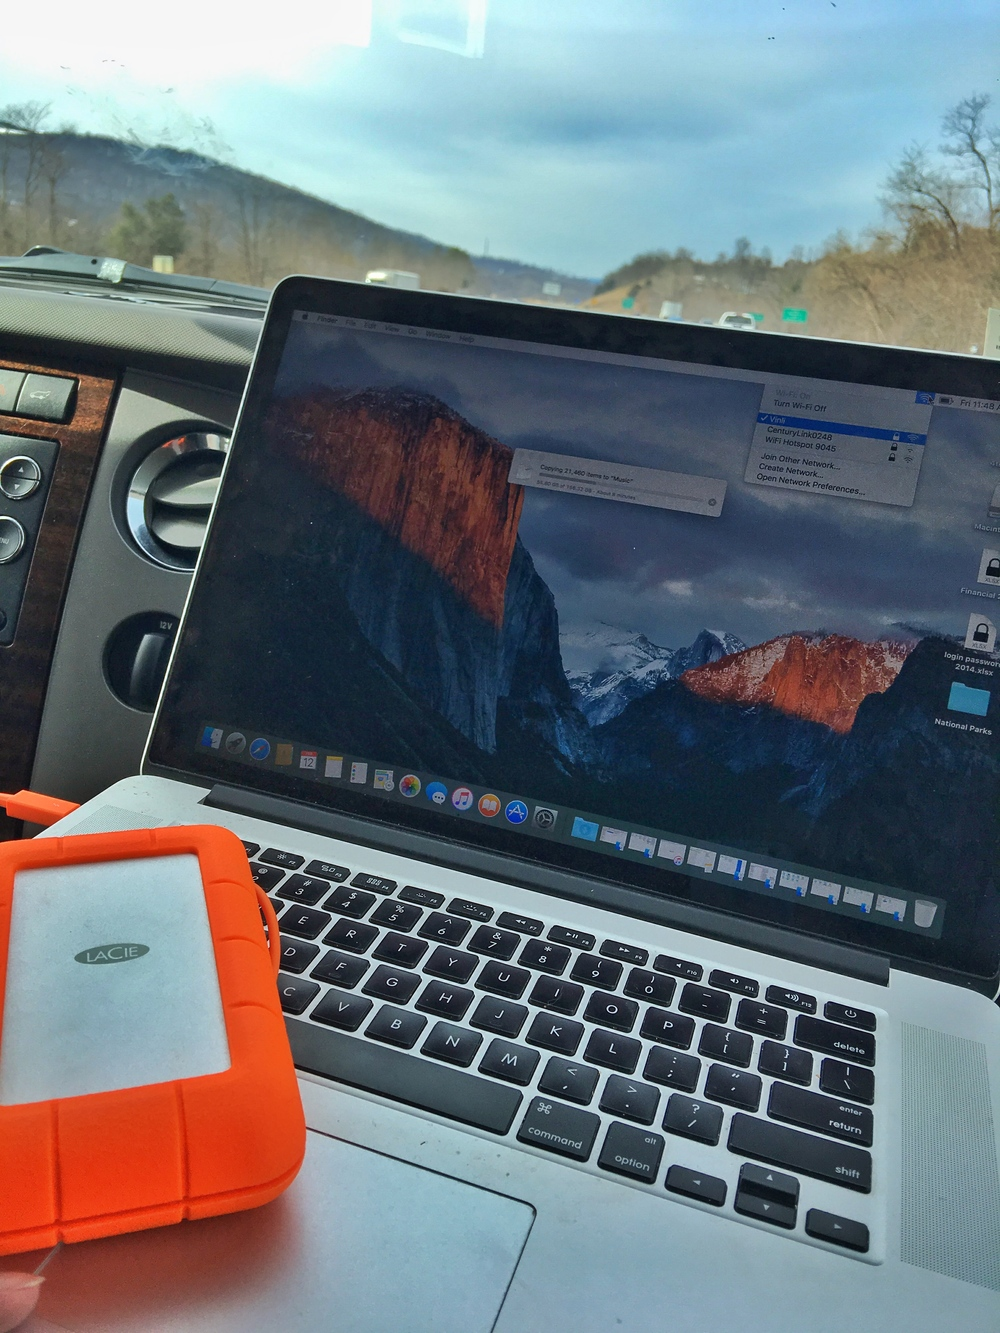 The LaCie uber-megabit external hard drive populates Stef's crashed computer with the help of Vinli mobile wifi on the way to Big Bend National Park in Texas.